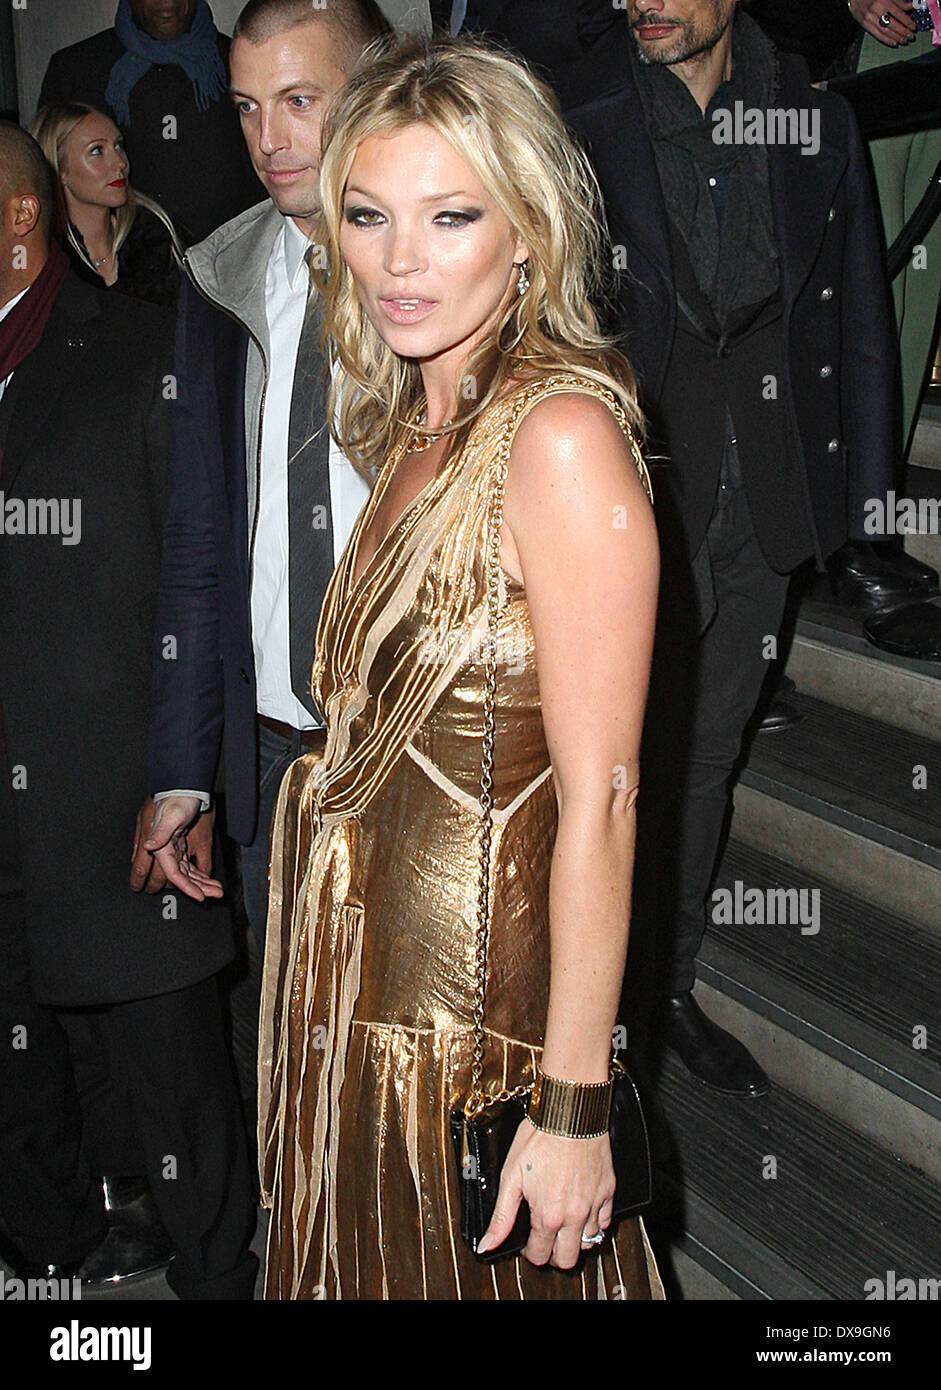 67c24c0056 Kate Moss in a gold dress